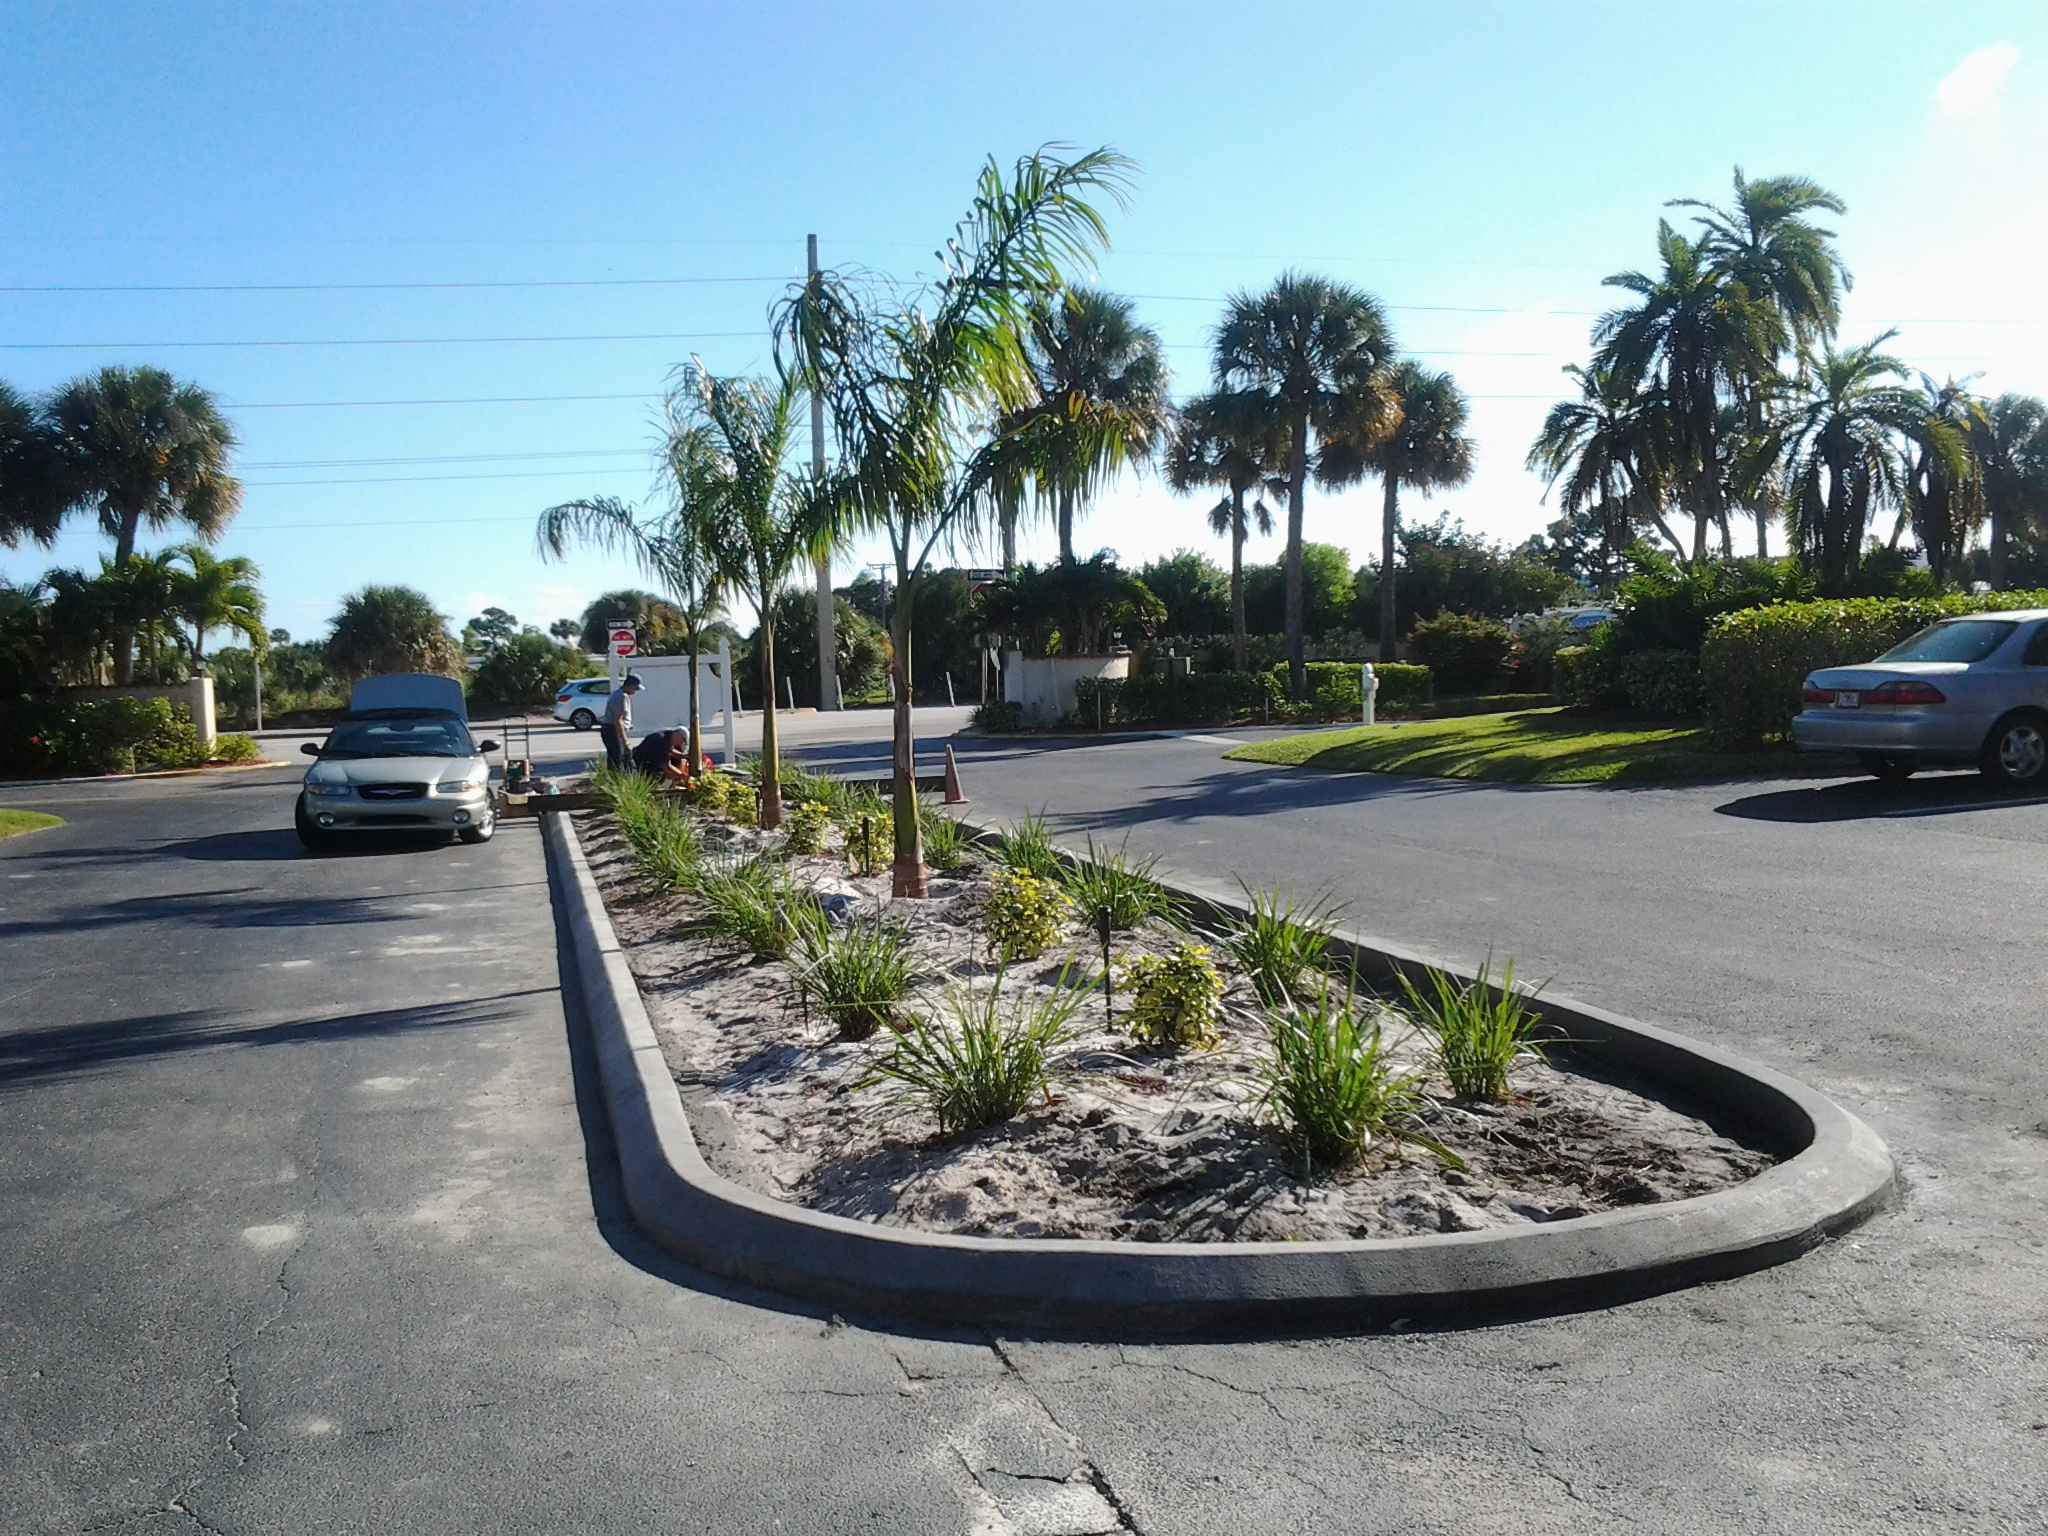 D curb, association, parking lot, landscaping, repair, driveways